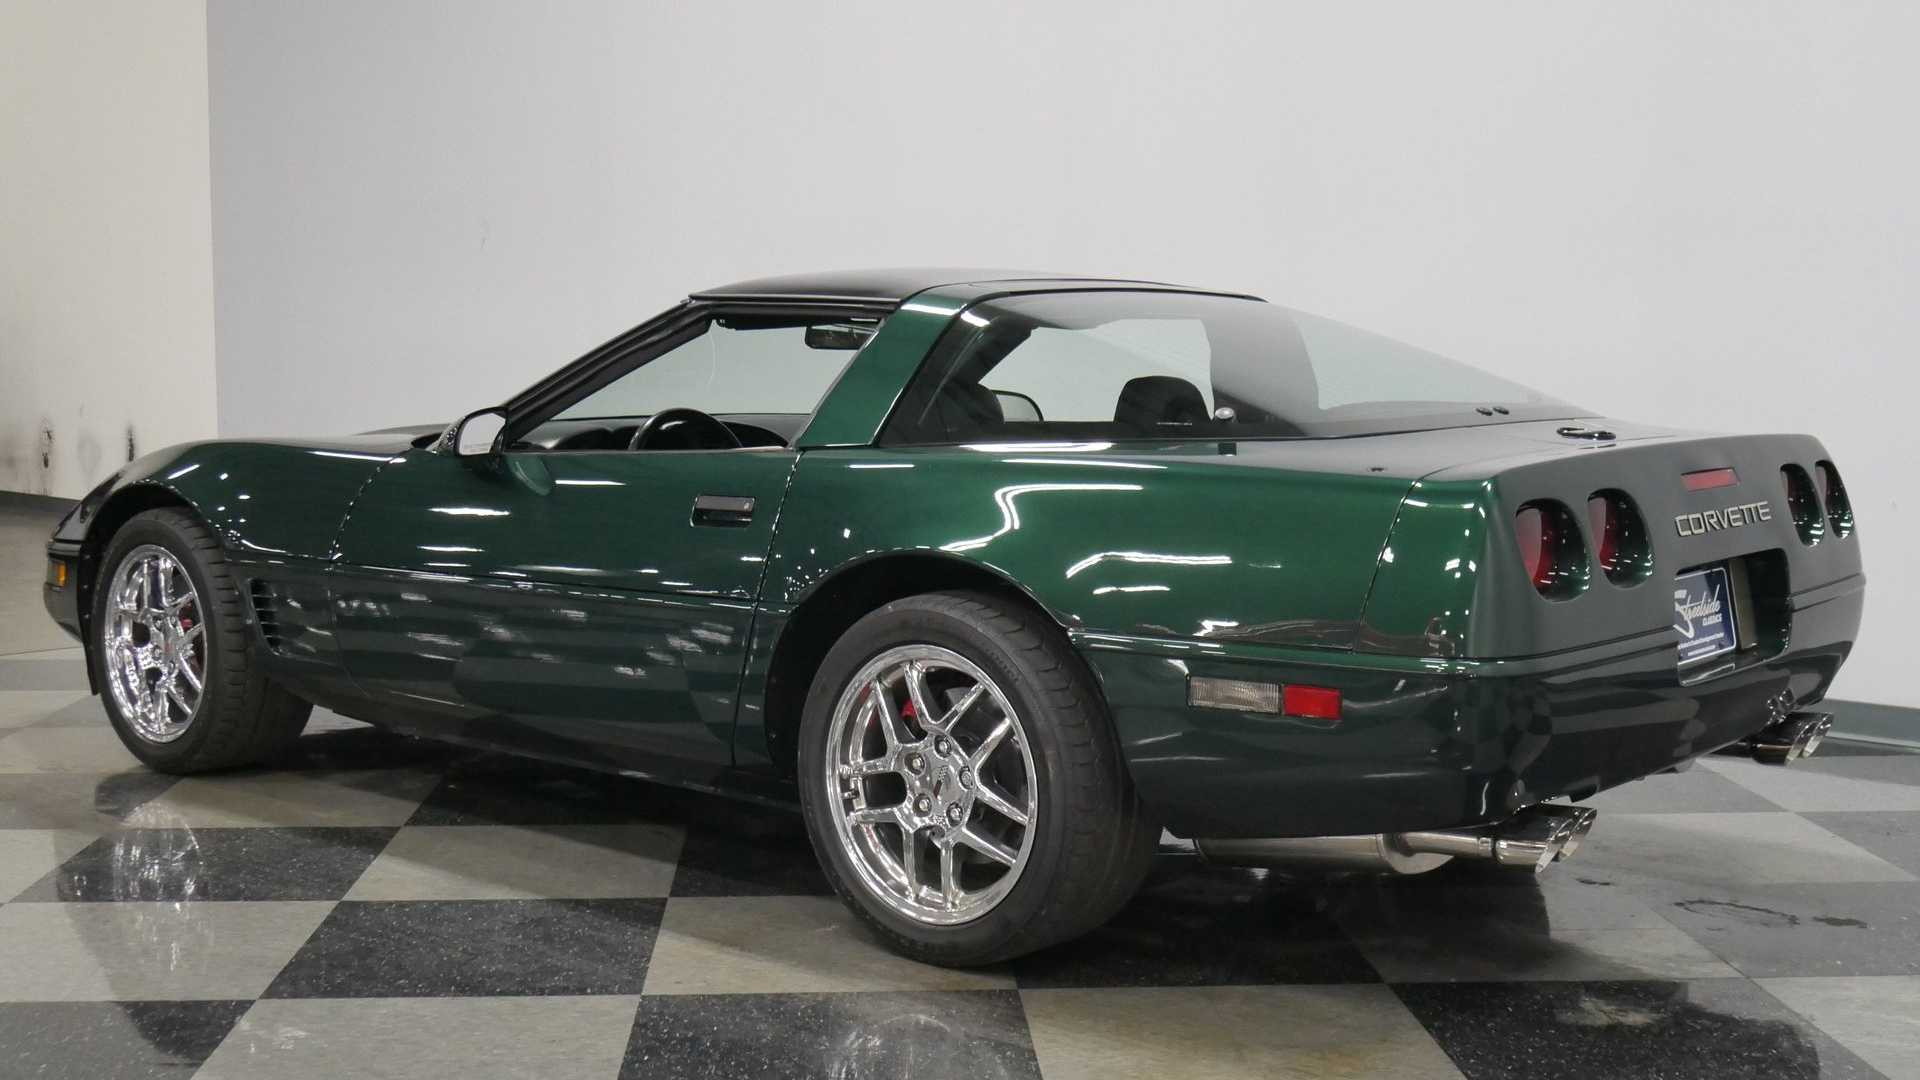 Polo Green 1995 Chevrolet Corvette C4 Is A Real Winner | Motorious